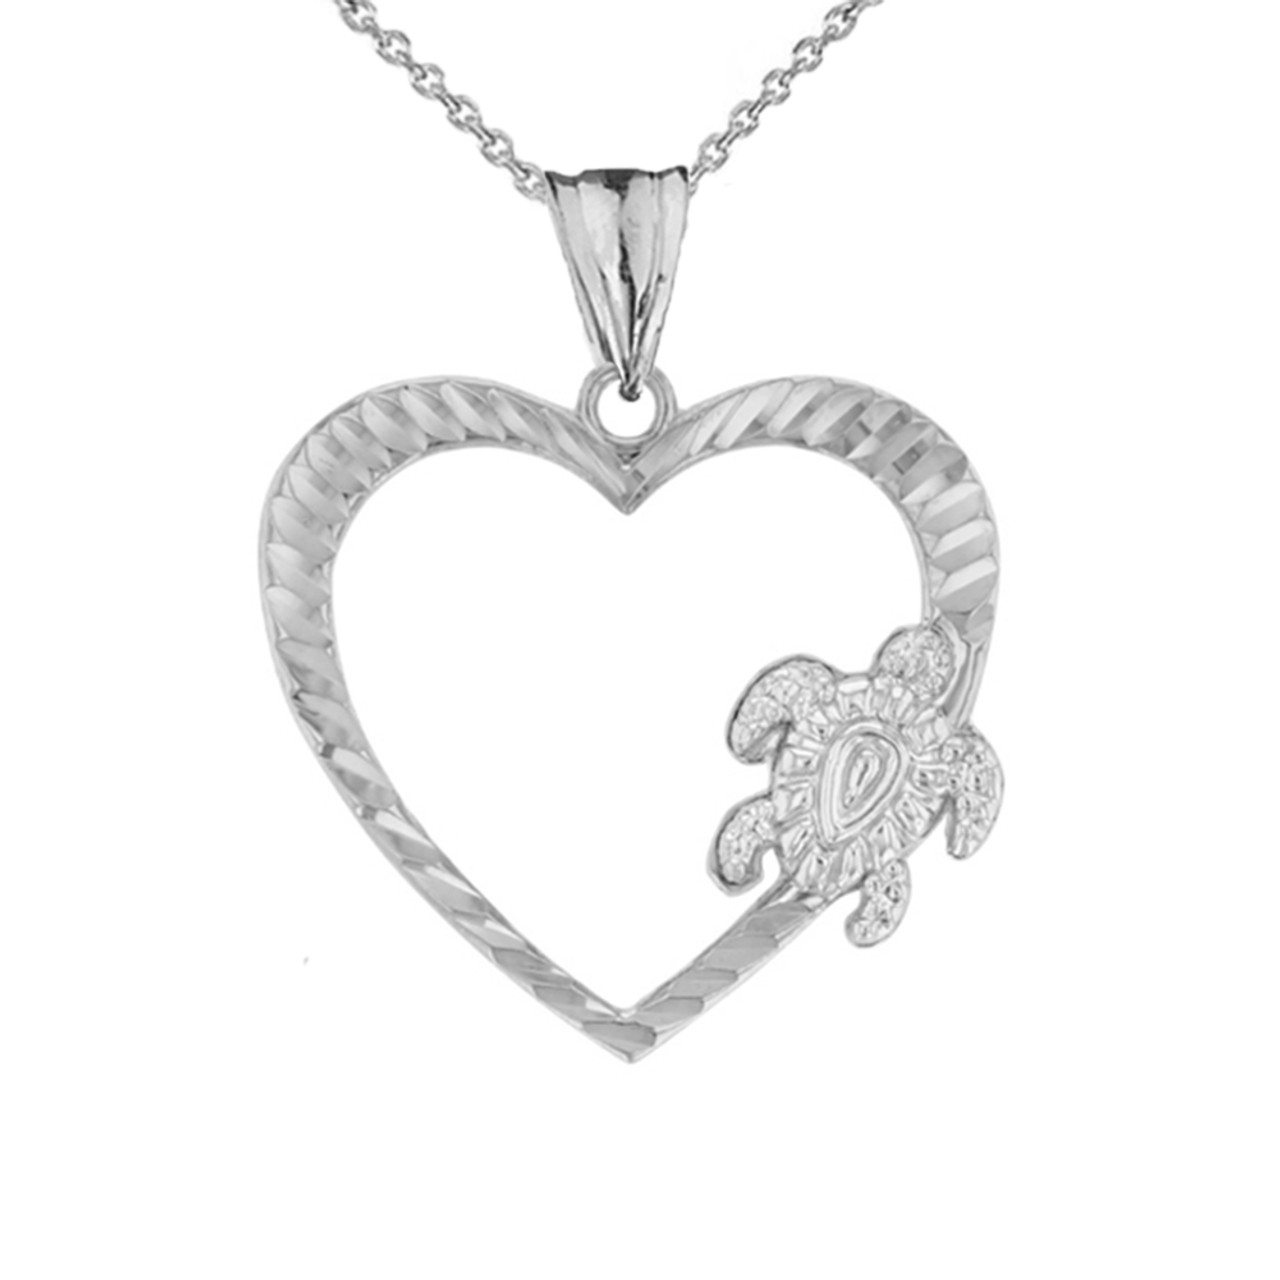 Honu Hawaiian Turtle Heart Pendant Necklace In Sterling Silver